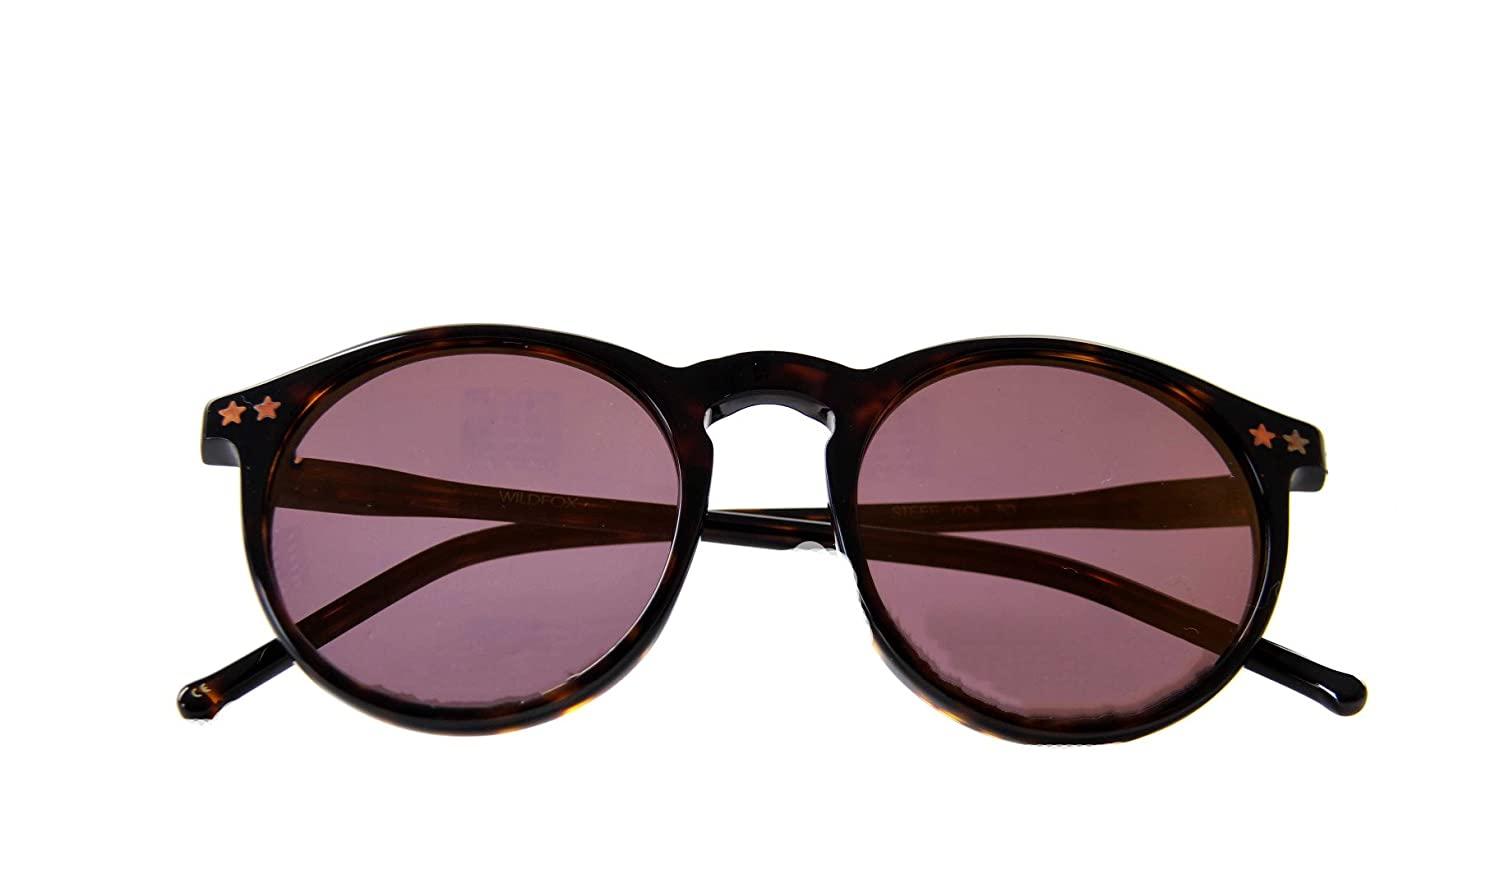 ae14587254 Wildfox Women s STEFF DELUXE Reflective Sunglasses Brown Black   Amazon.co.uk  Clothing